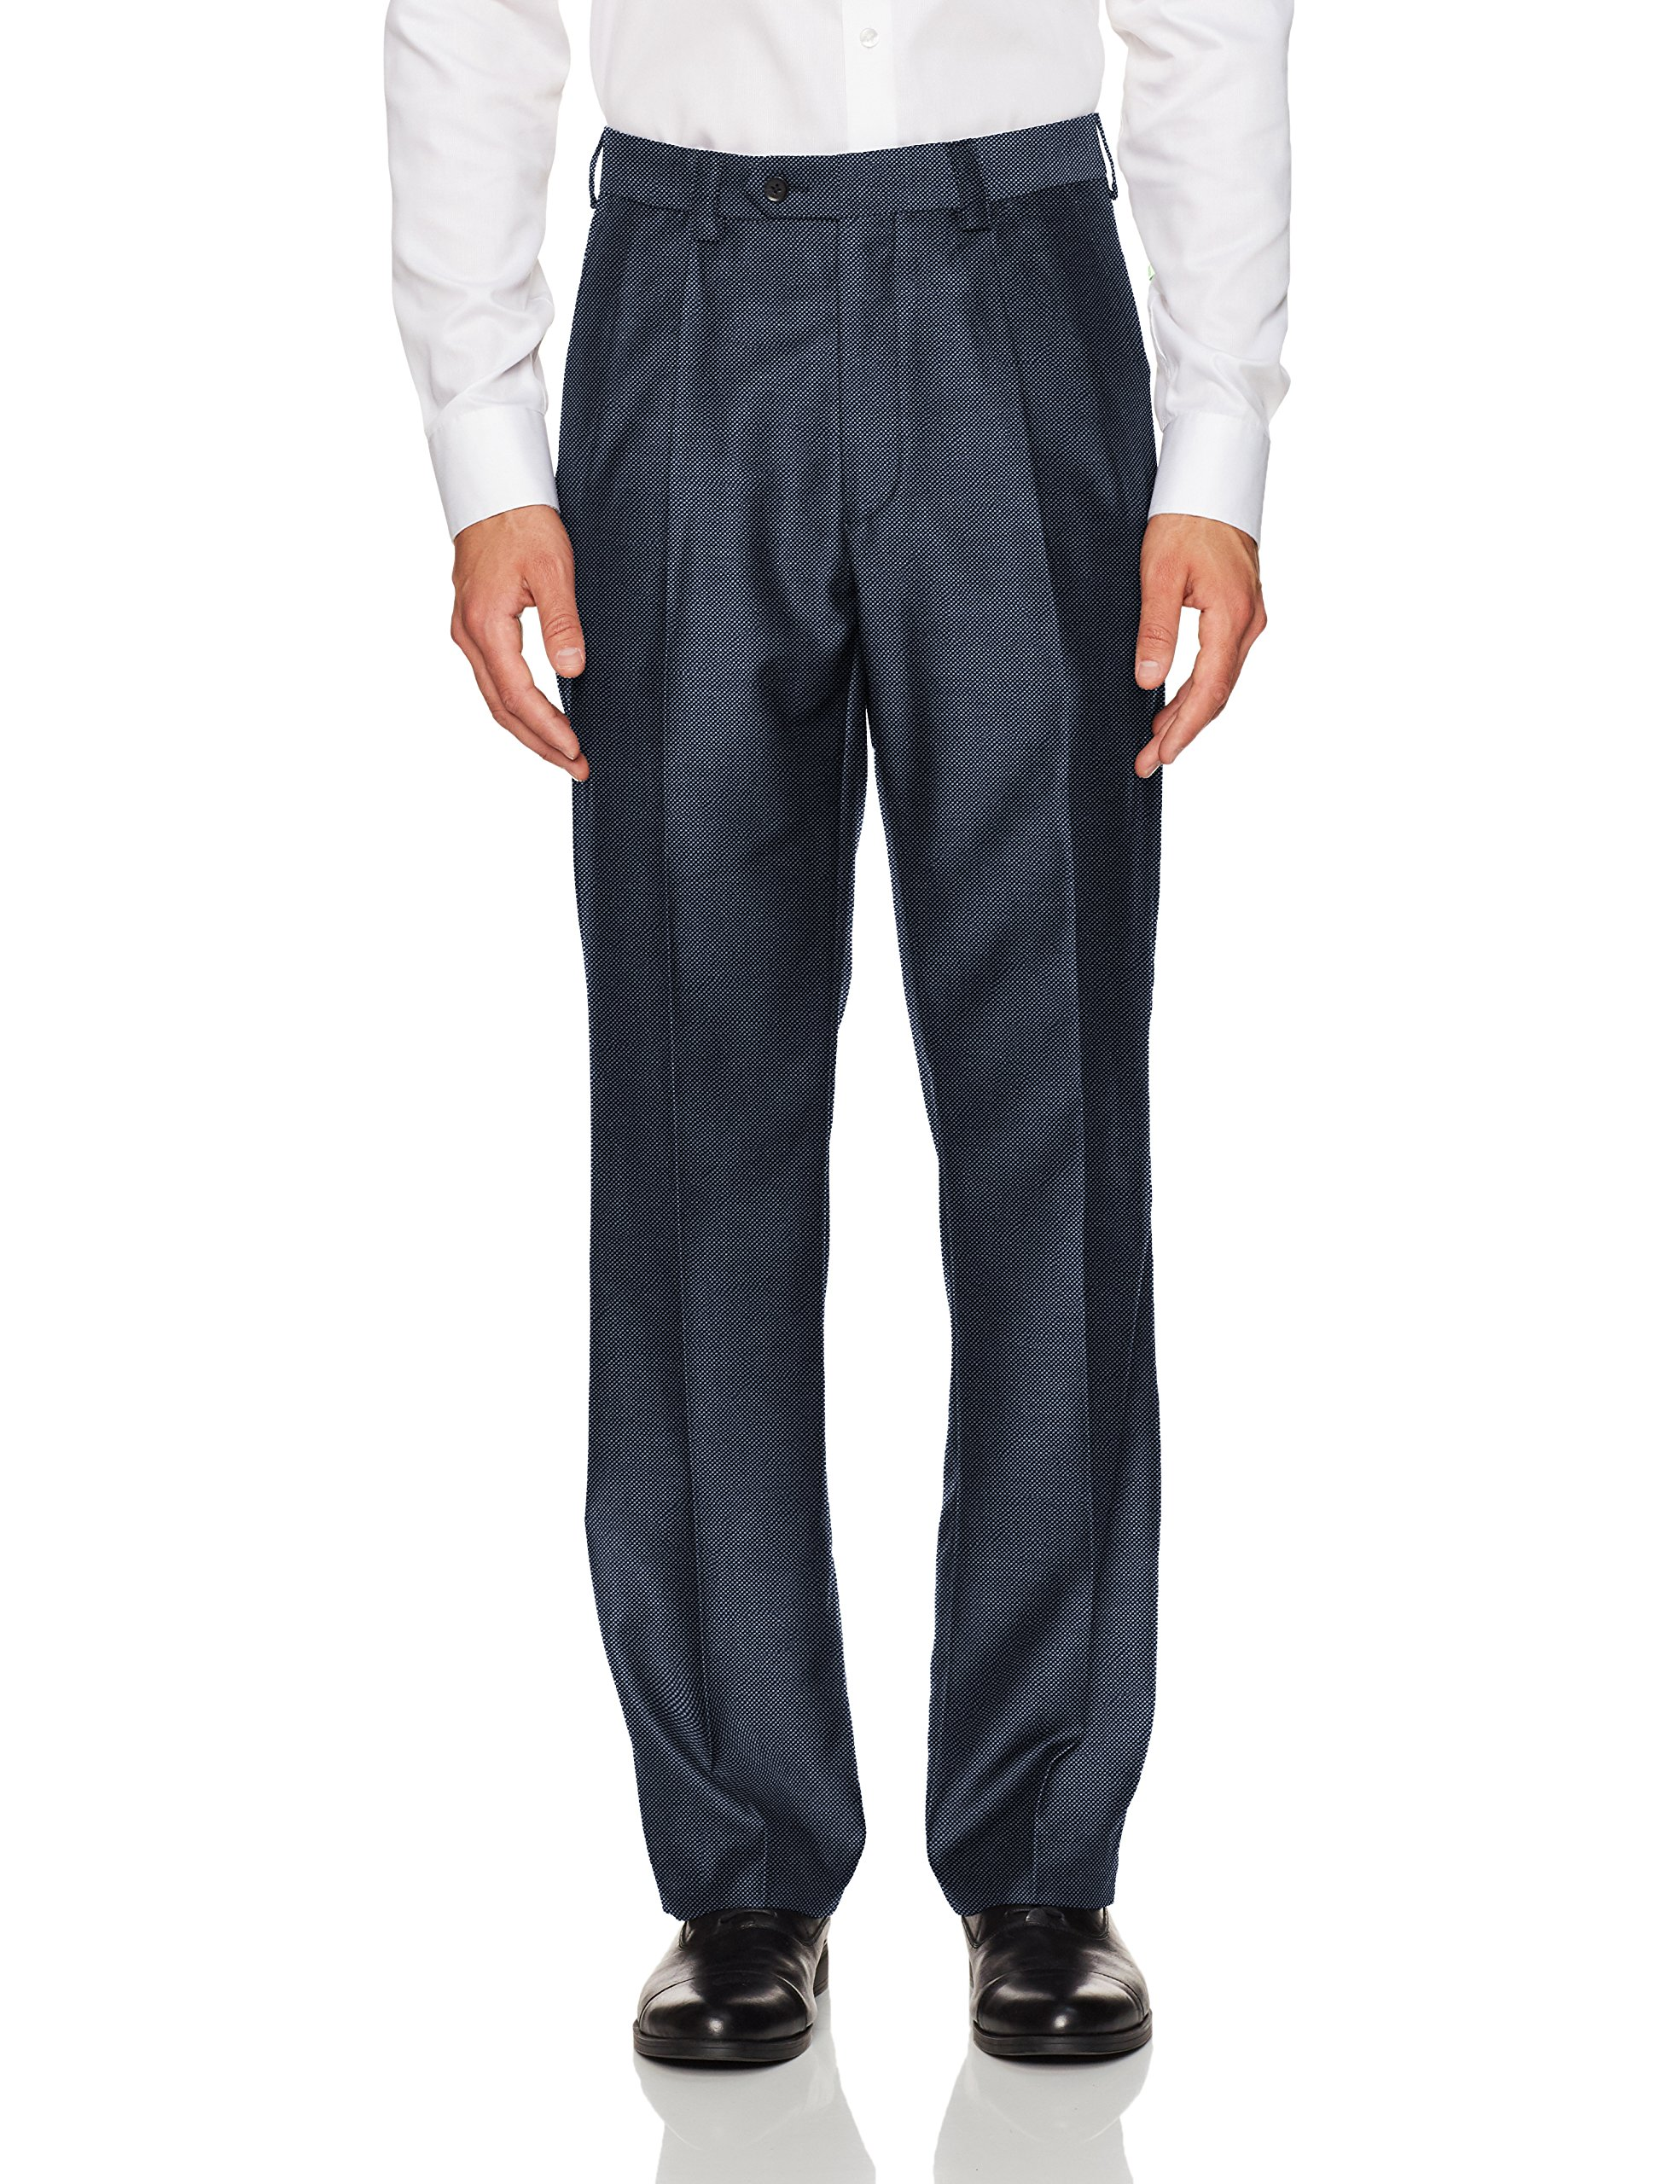 Steve Harvey Men's Solid Regular Fit Suit Seperate Pant, New Blue, 40Wx34L